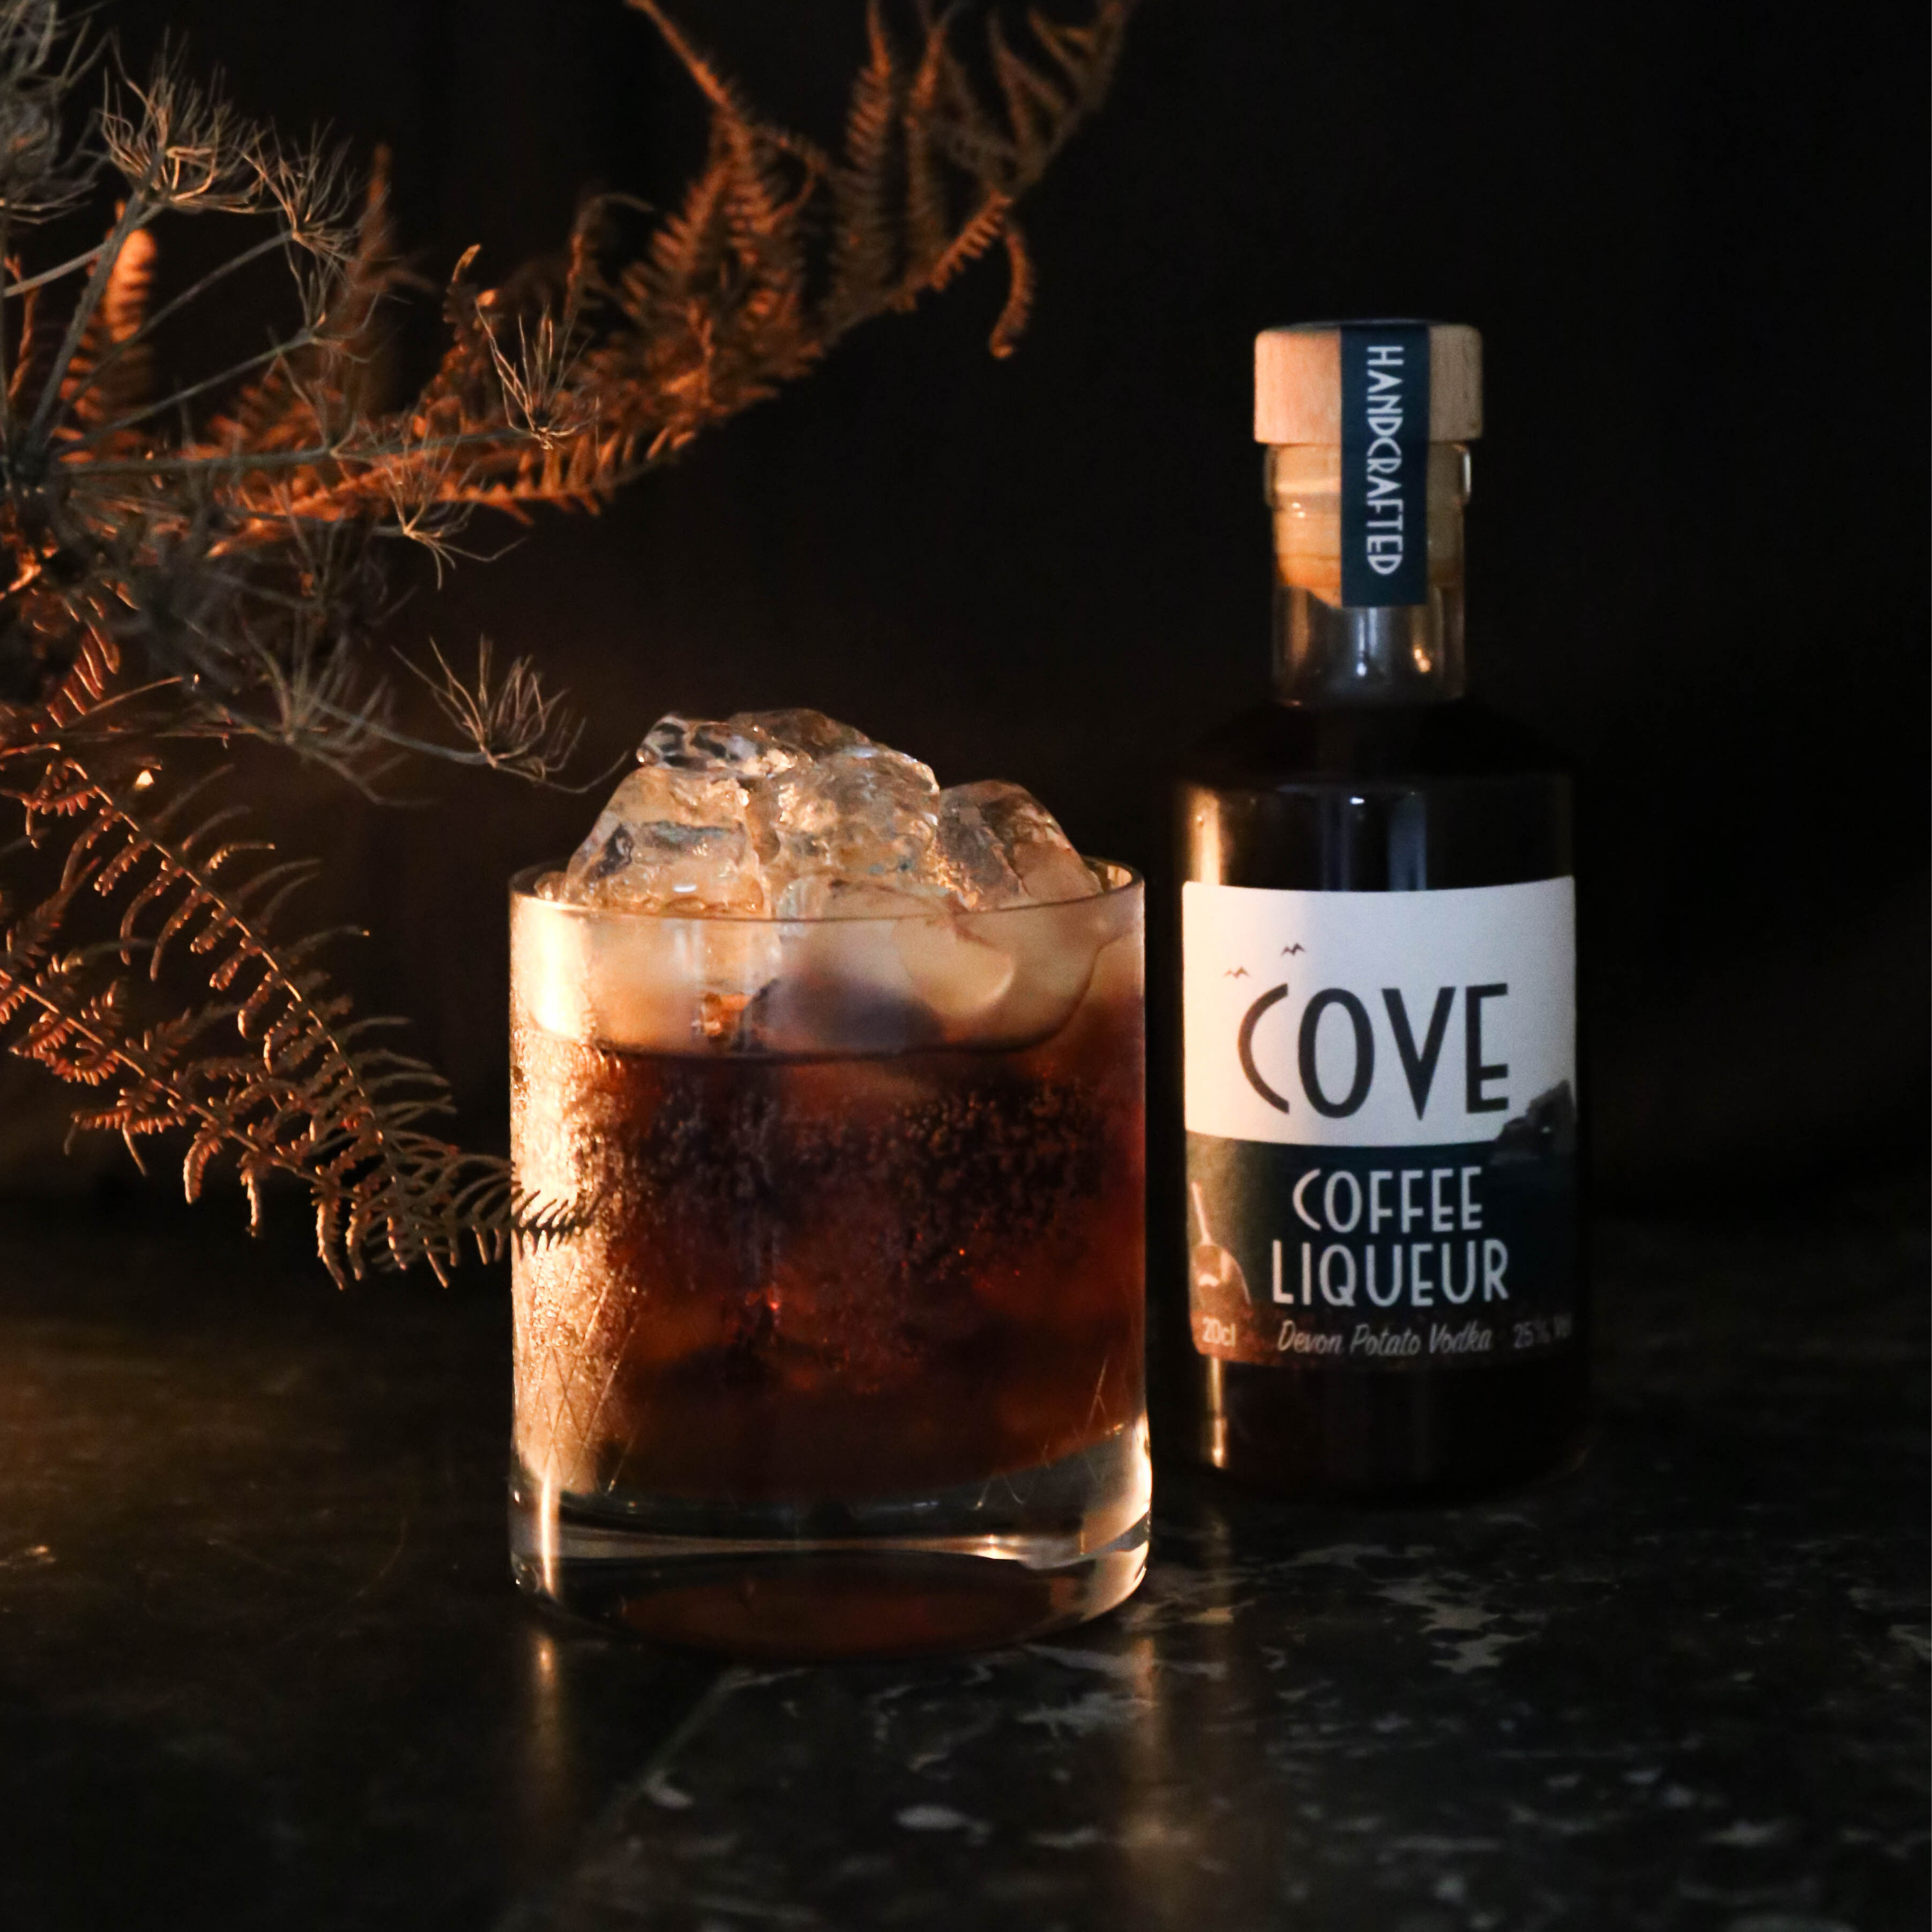 Coffee liqueur and White Russian